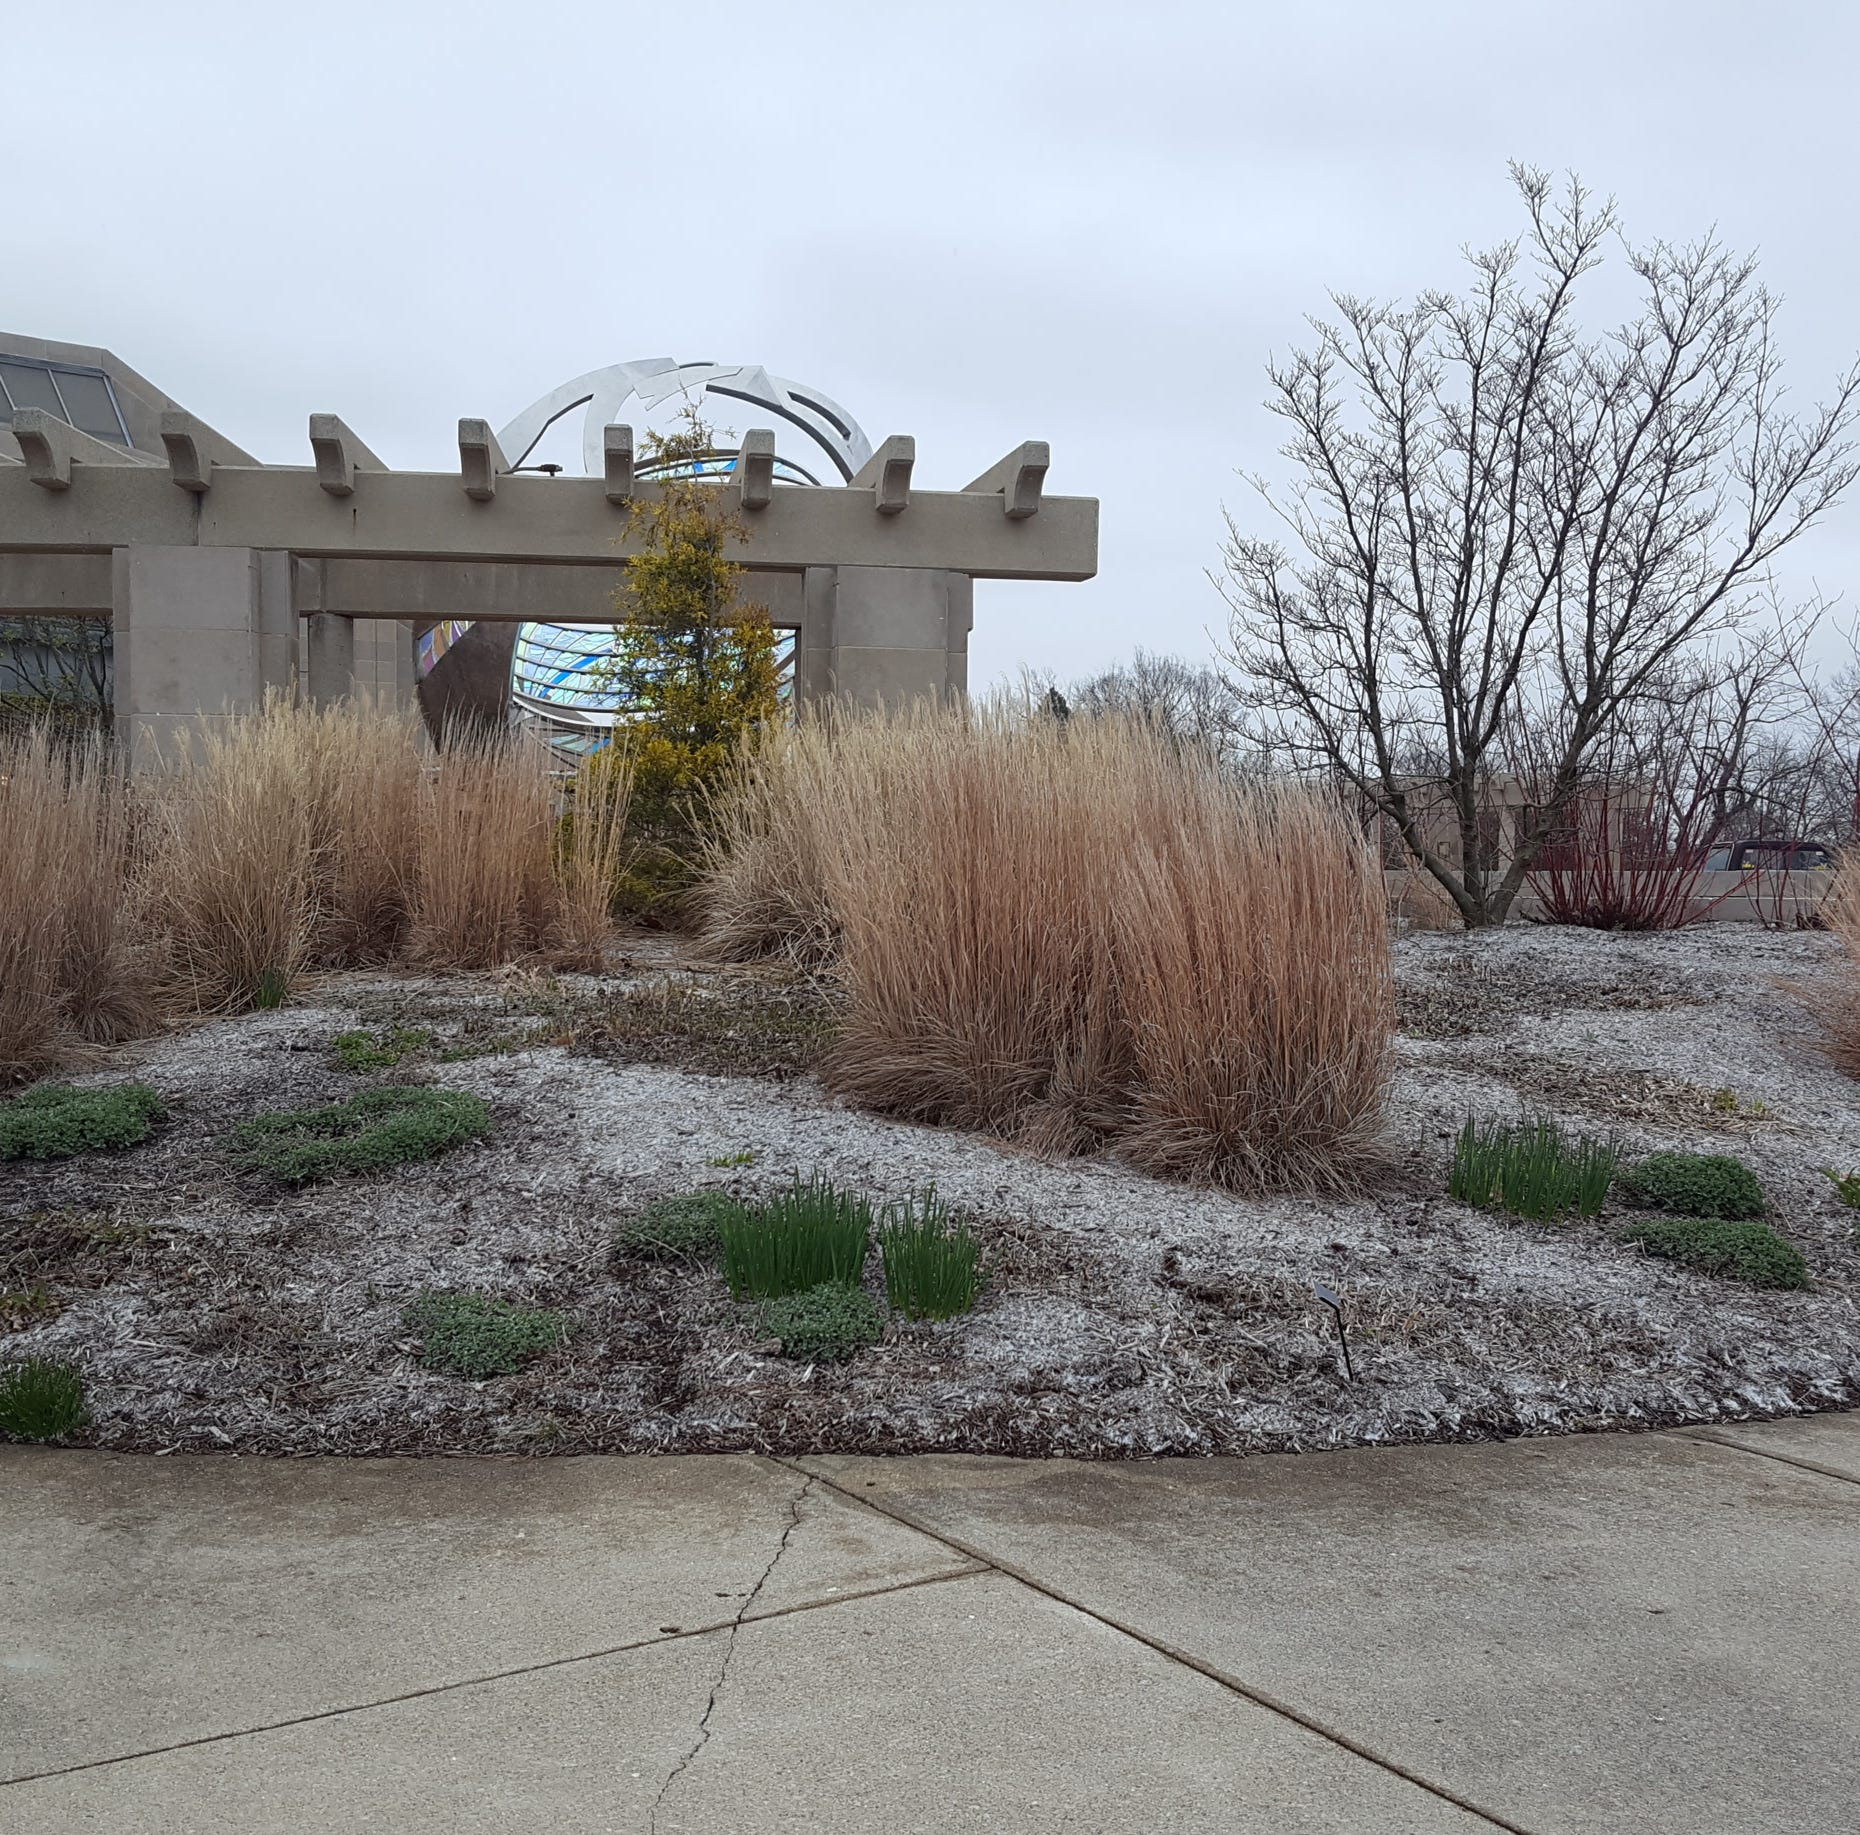 Get Up and Grow: What is January like for Minnetrista's horticulture department?